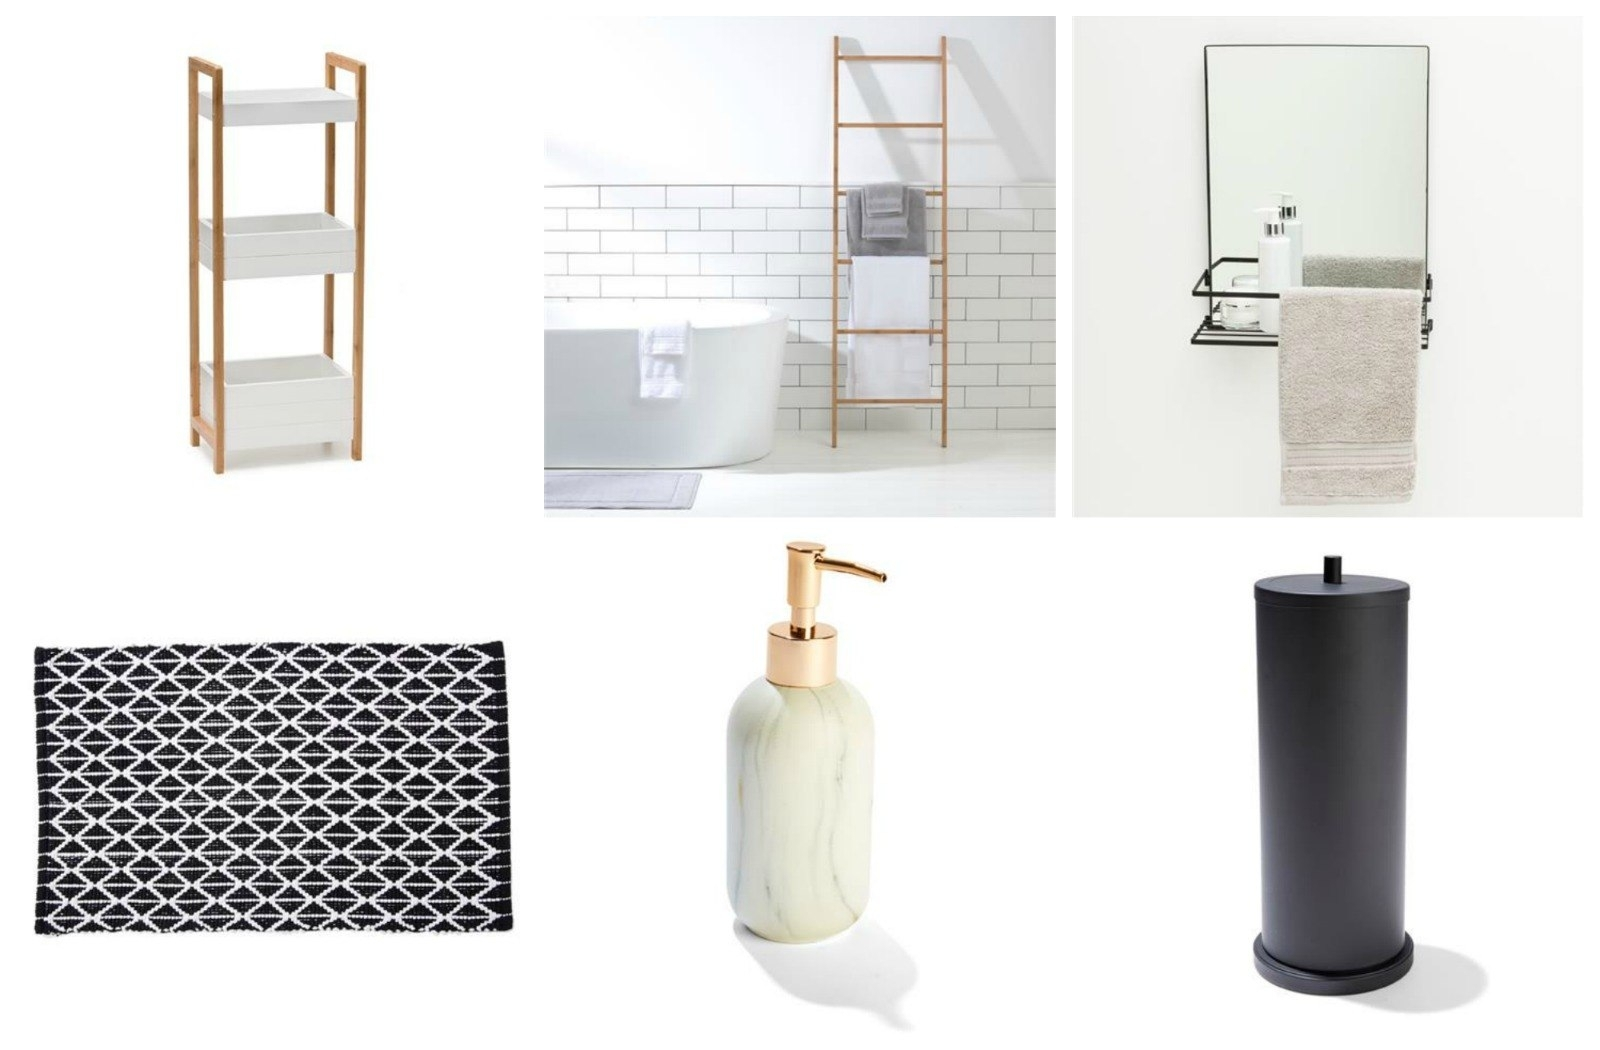 Cheap And Chic Bathroom Accessories And Storage From Kmart The – layjao